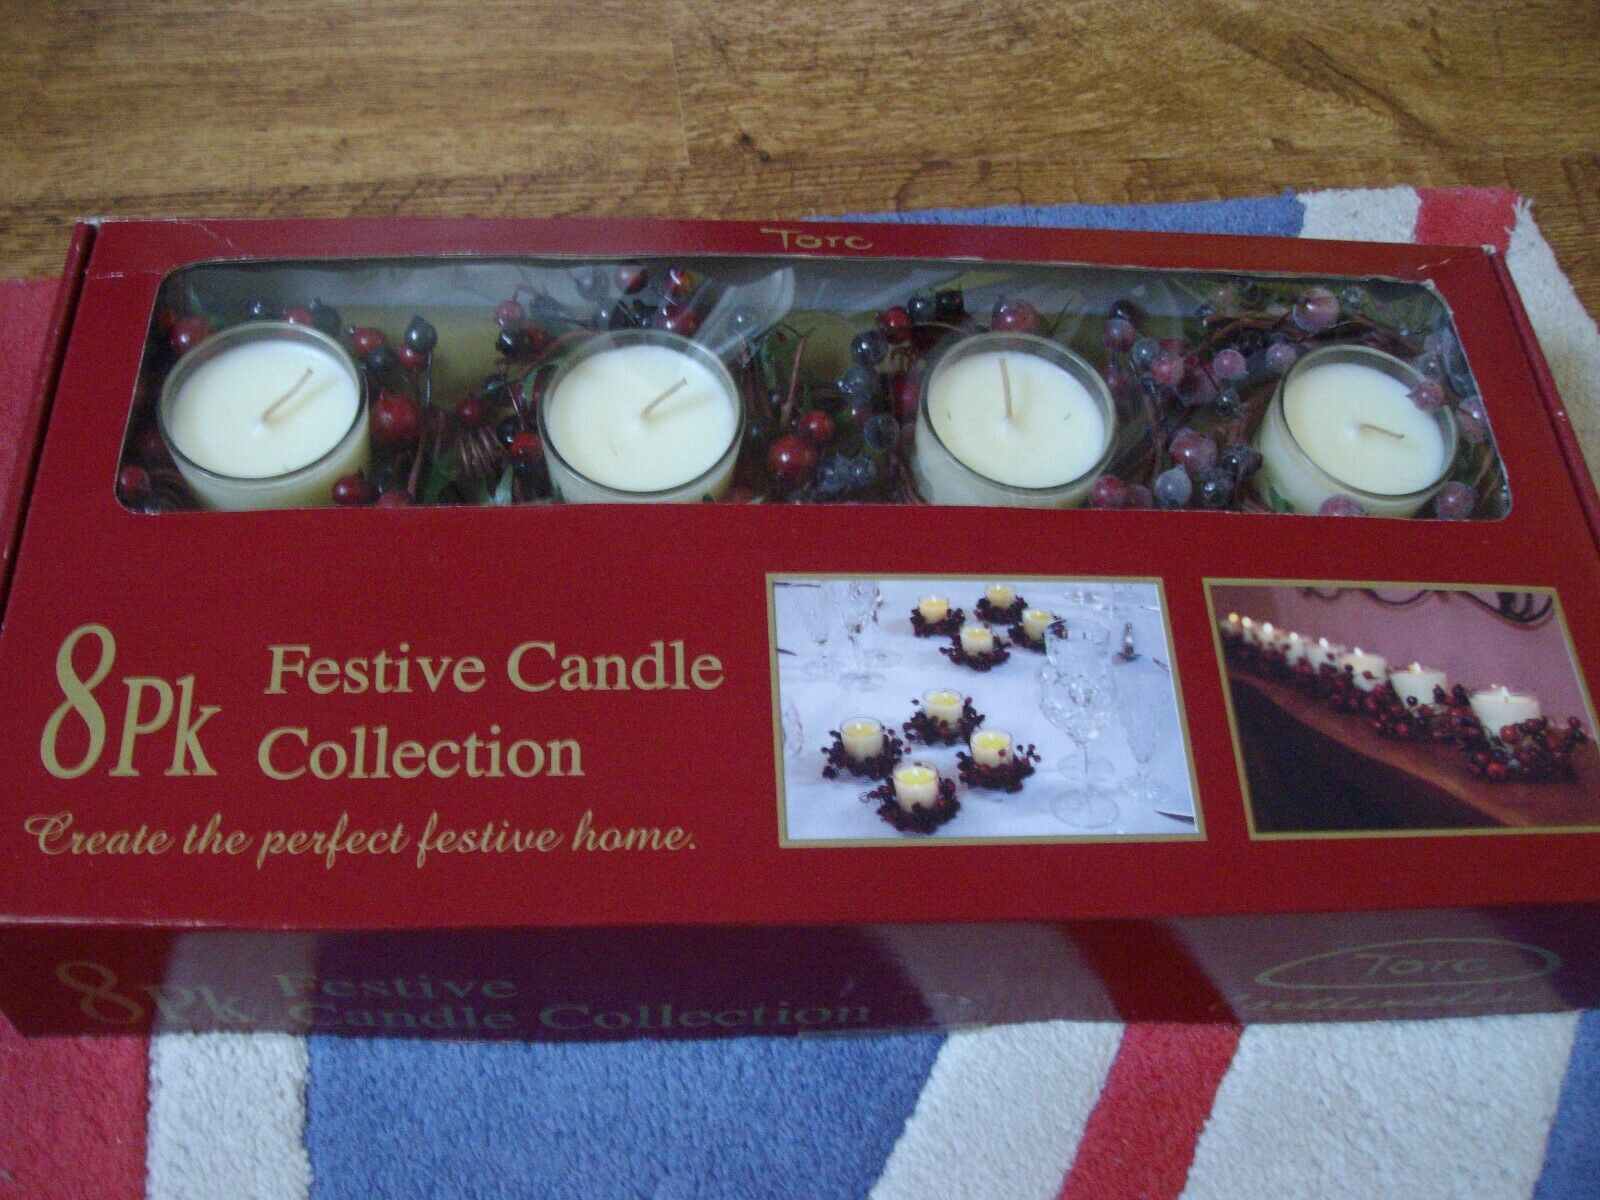 Torc Candlemakers 8 Pack Festive Christmas Candles & Berry Wreaths New Boxed